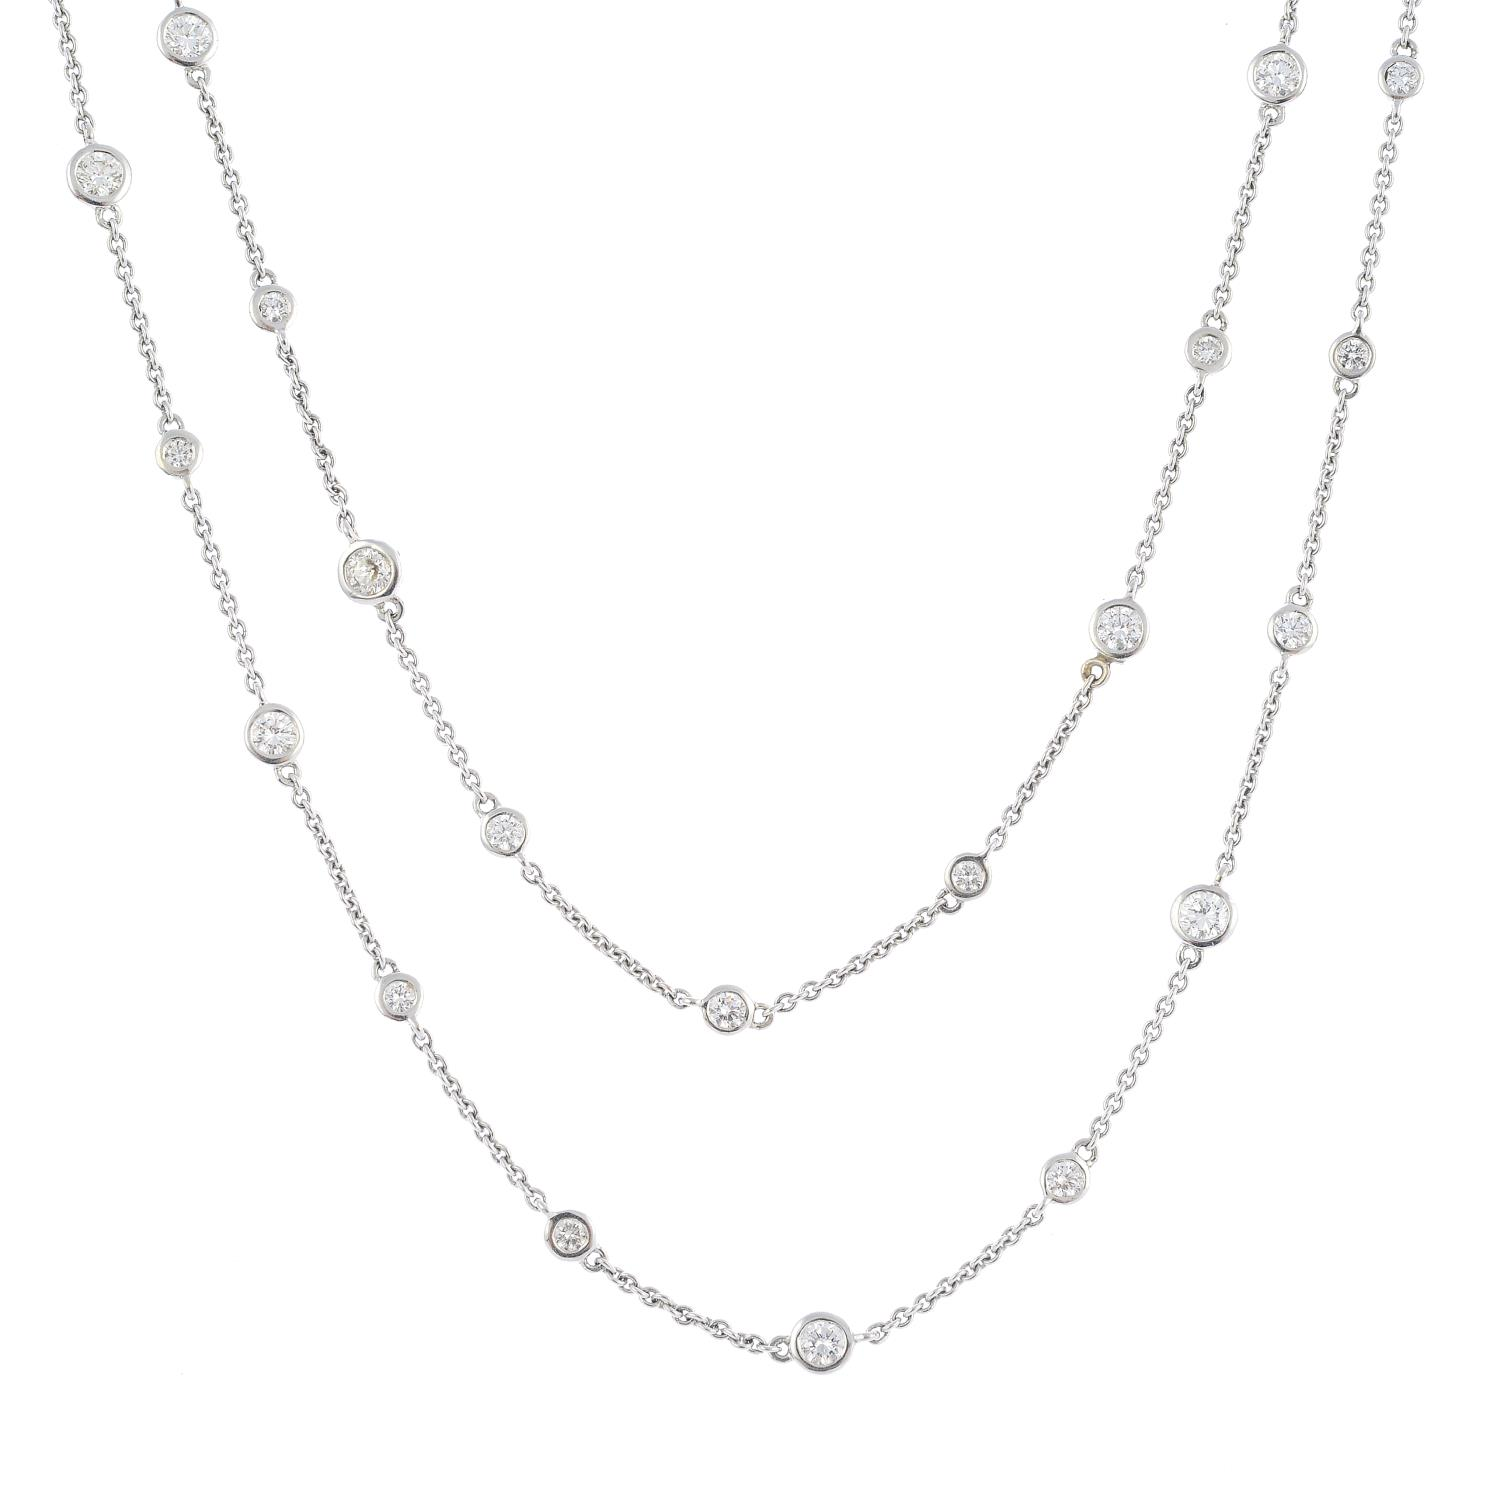 Lot 54 - A diamond necklace.